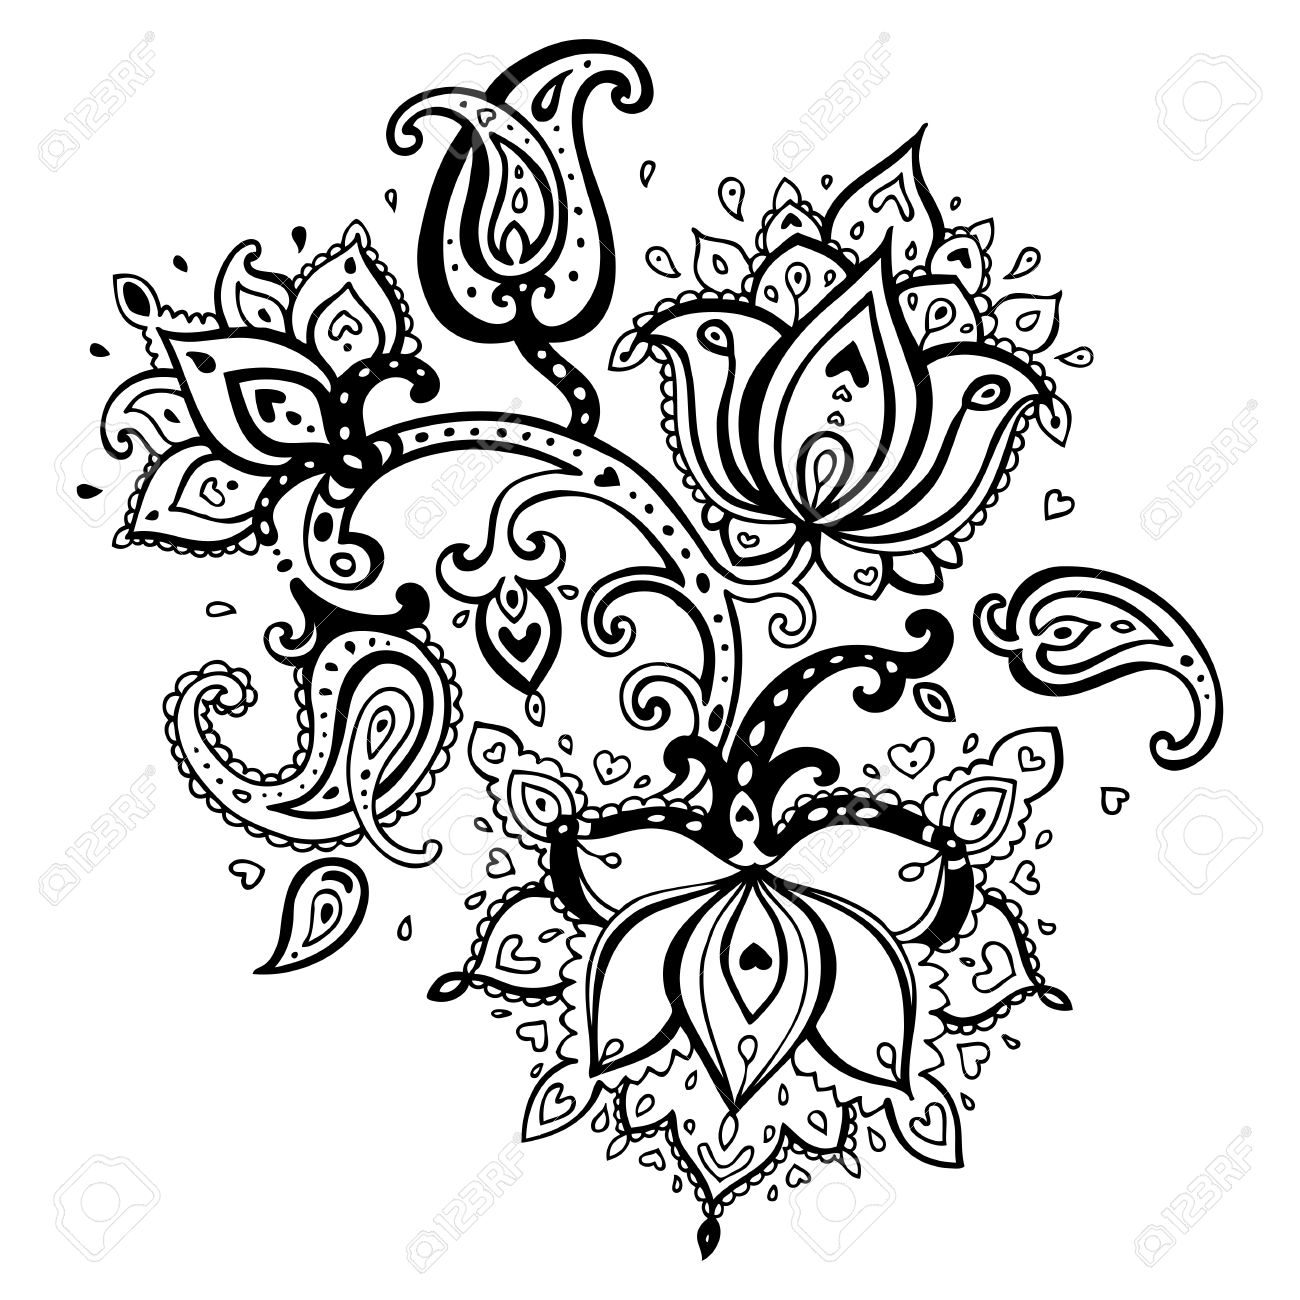 Paisley ornament   Lotus flower  Vector illustration isolated Stock Vector - 18516068